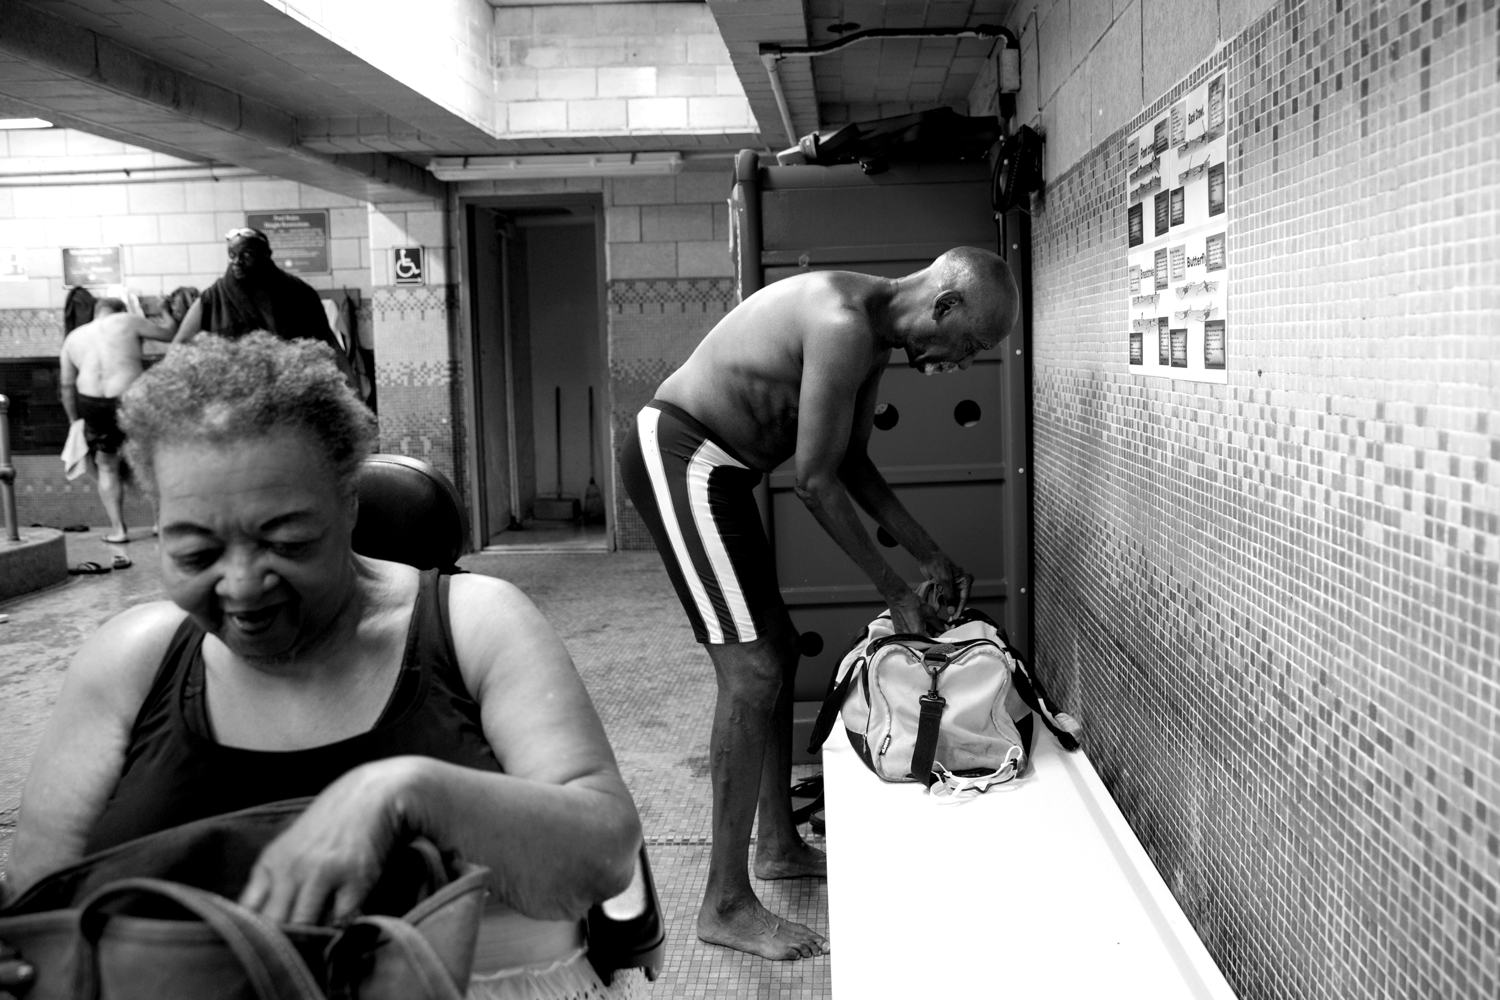 Rasheedah Ali (left) and Luther Gales prepare for the Harlem Honeys and Bears practice on June 26, 2017, in the Hansborough Recreation Center. Both Ali and Gales are longtime members of the all-black synchronized swim team that practices in Harlem, New York.